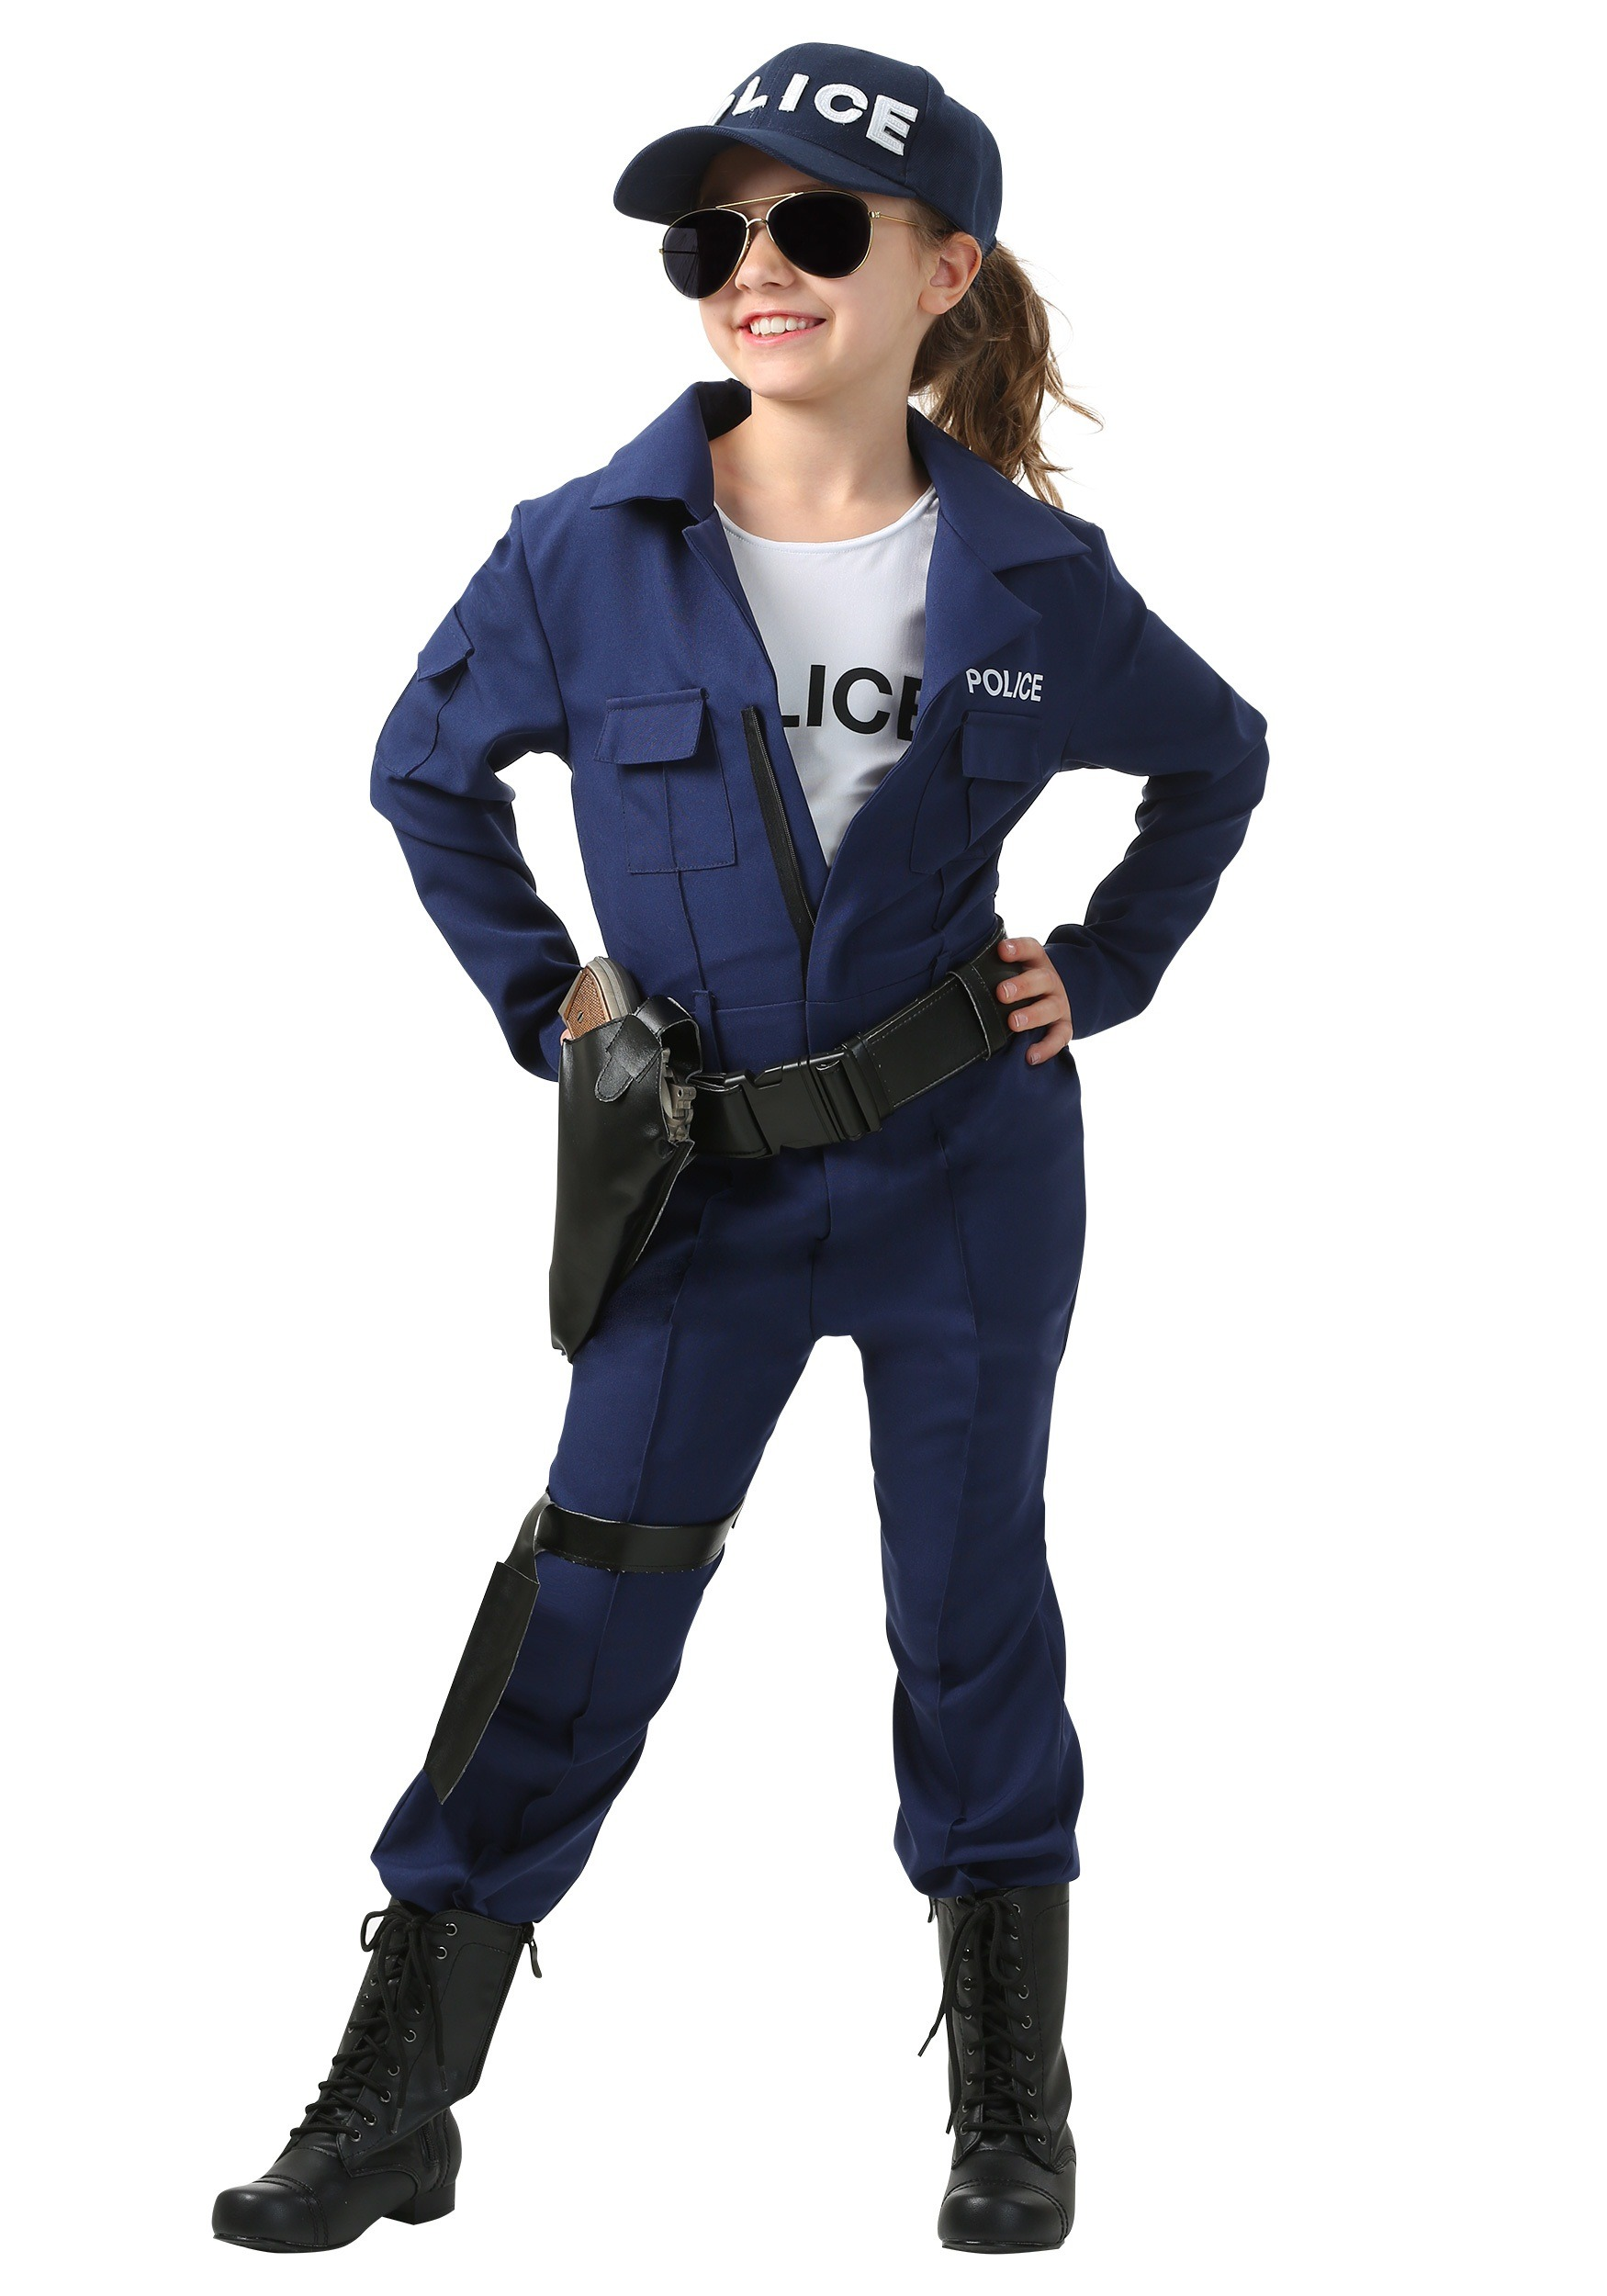 Tactical Cop Jumpsuit Costume for Girls